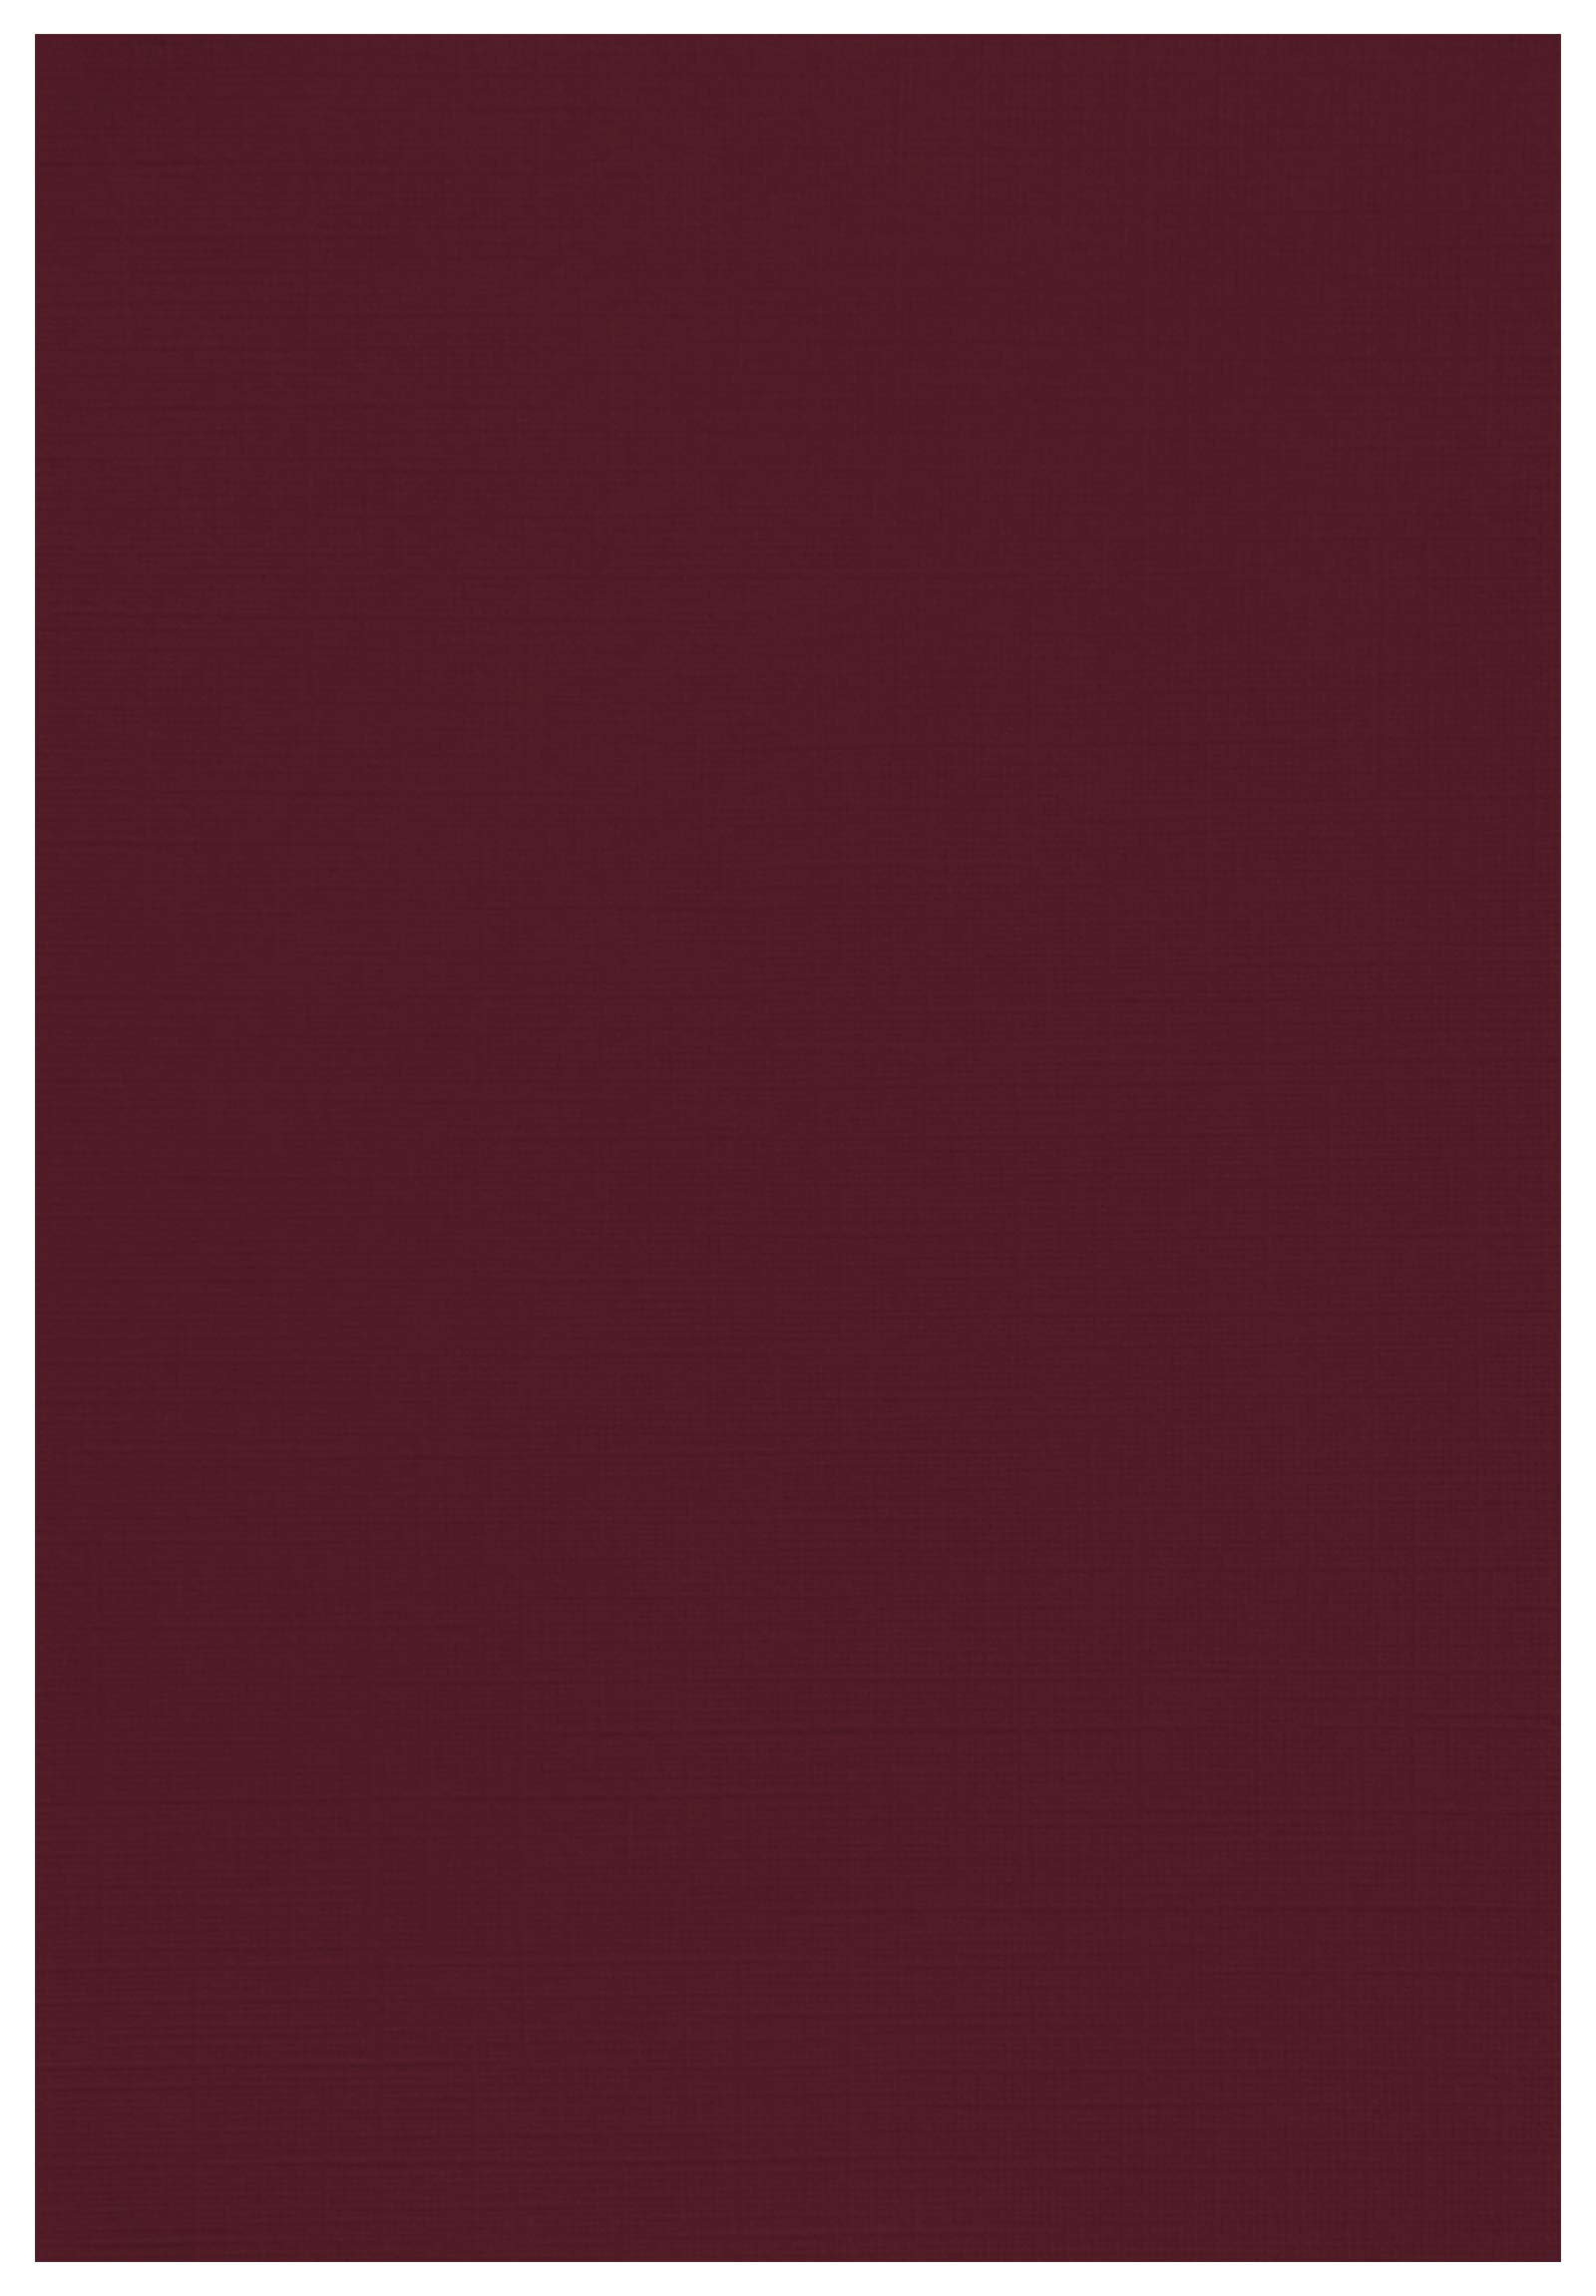 13 x 19 Cardstock - Burgundy Linen (50 Qty.) | Perfect for Holiday Crafting, Invitations, Scrapbooking, Cards and so much more! |1319-C-BGLI-50